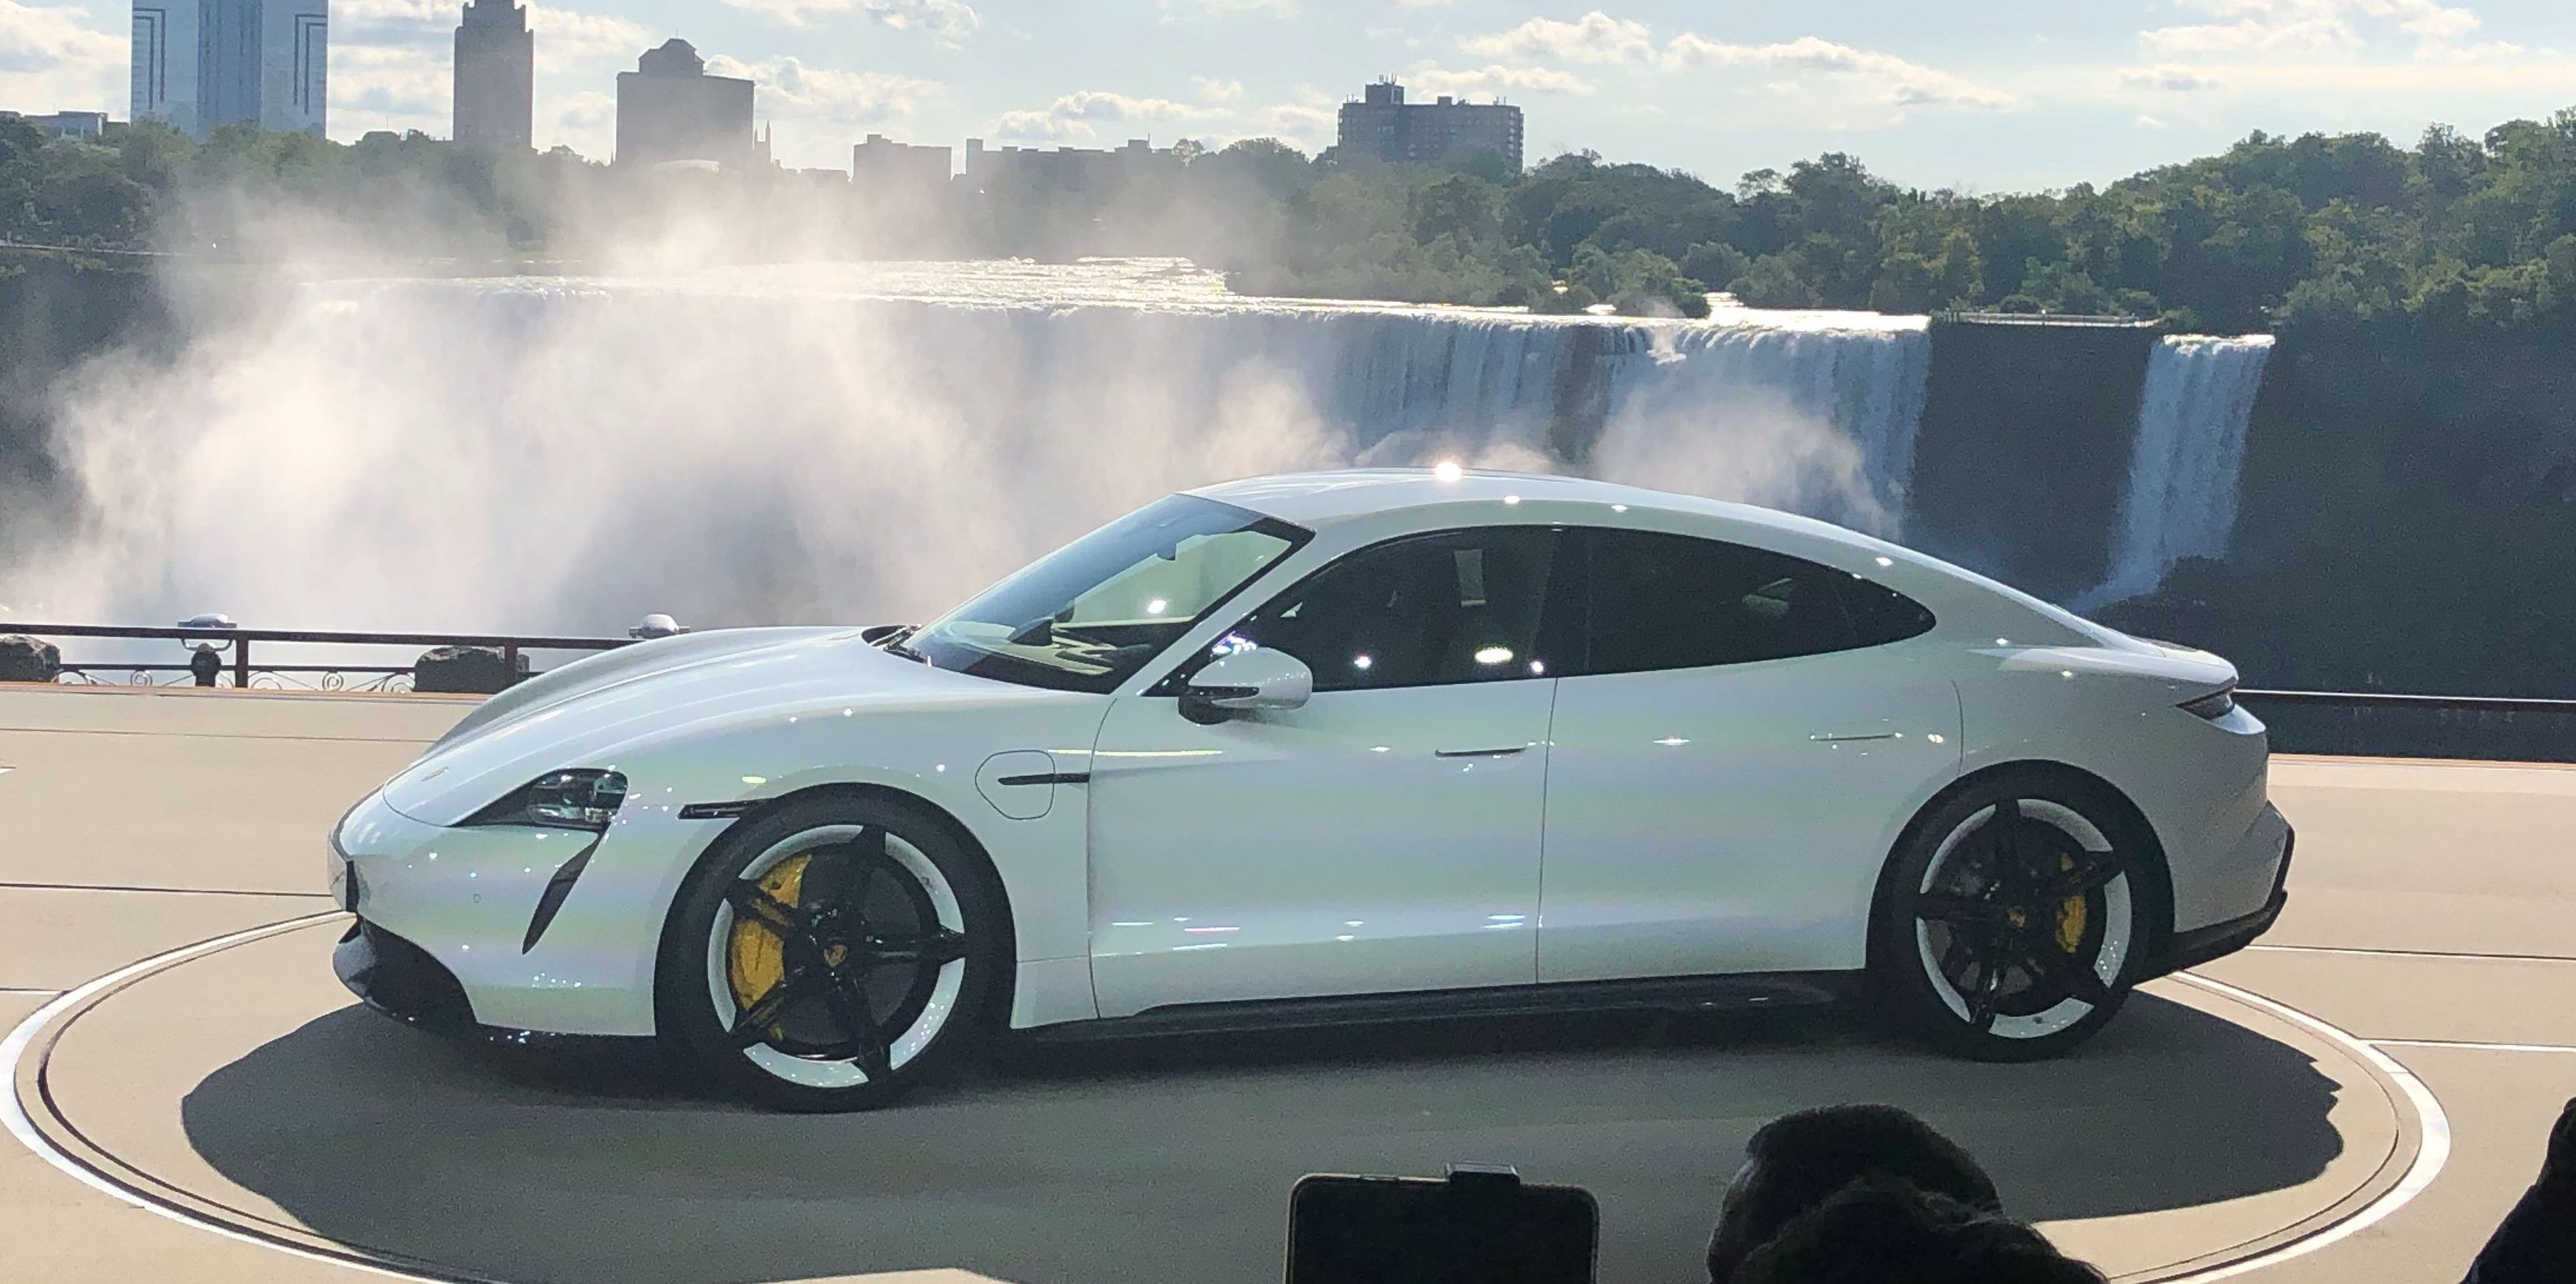 Porsche Unveils Taycan Electric Car Up To 280 Miles Of Range And As Stunning As The Concept Porsche Taycan Porsche All Electric Cars